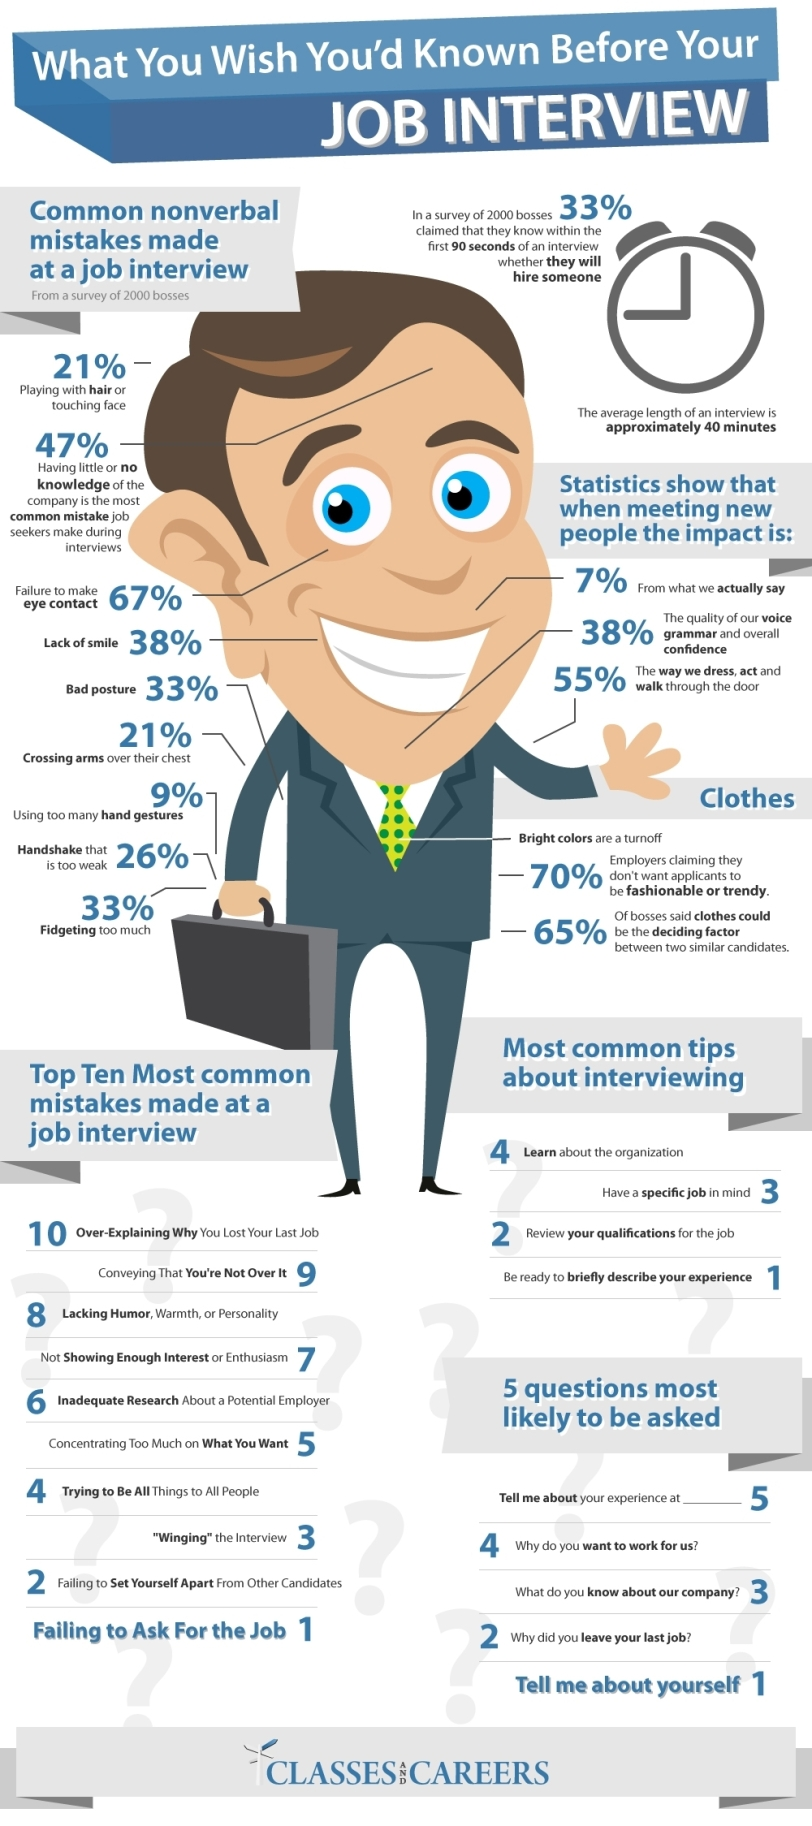 What You Wish You'd Known Before Your Job Interview